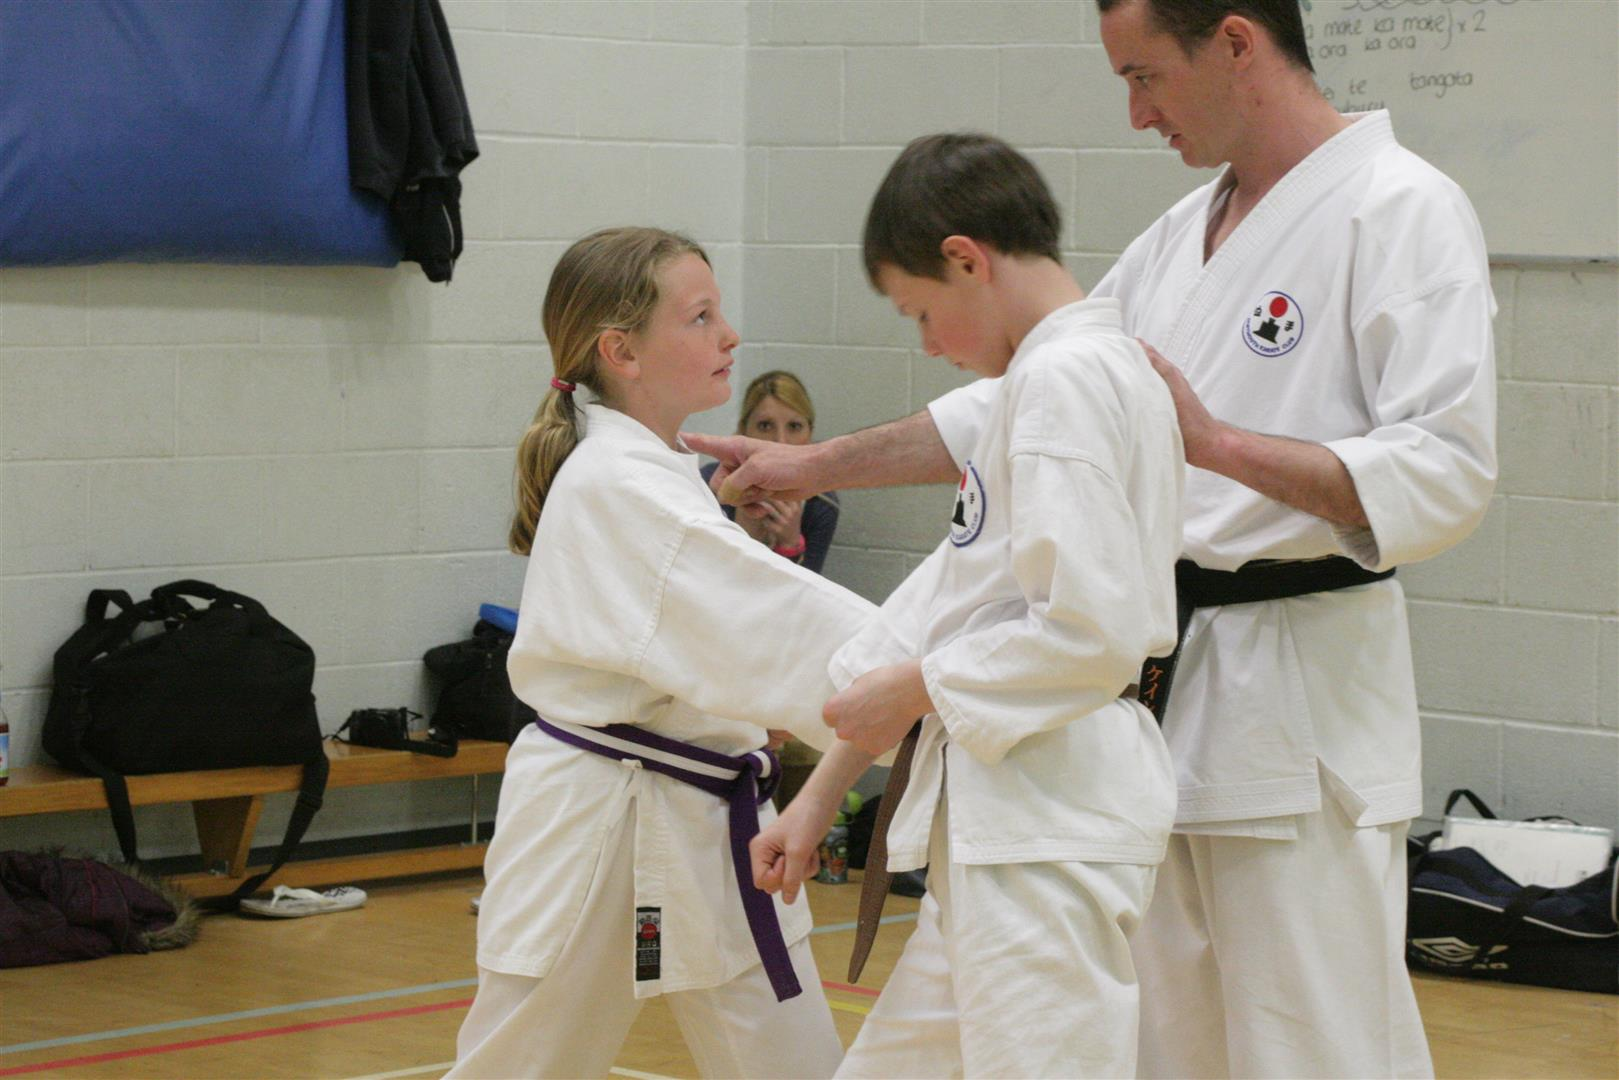 karate-training-pics-may-2013-21